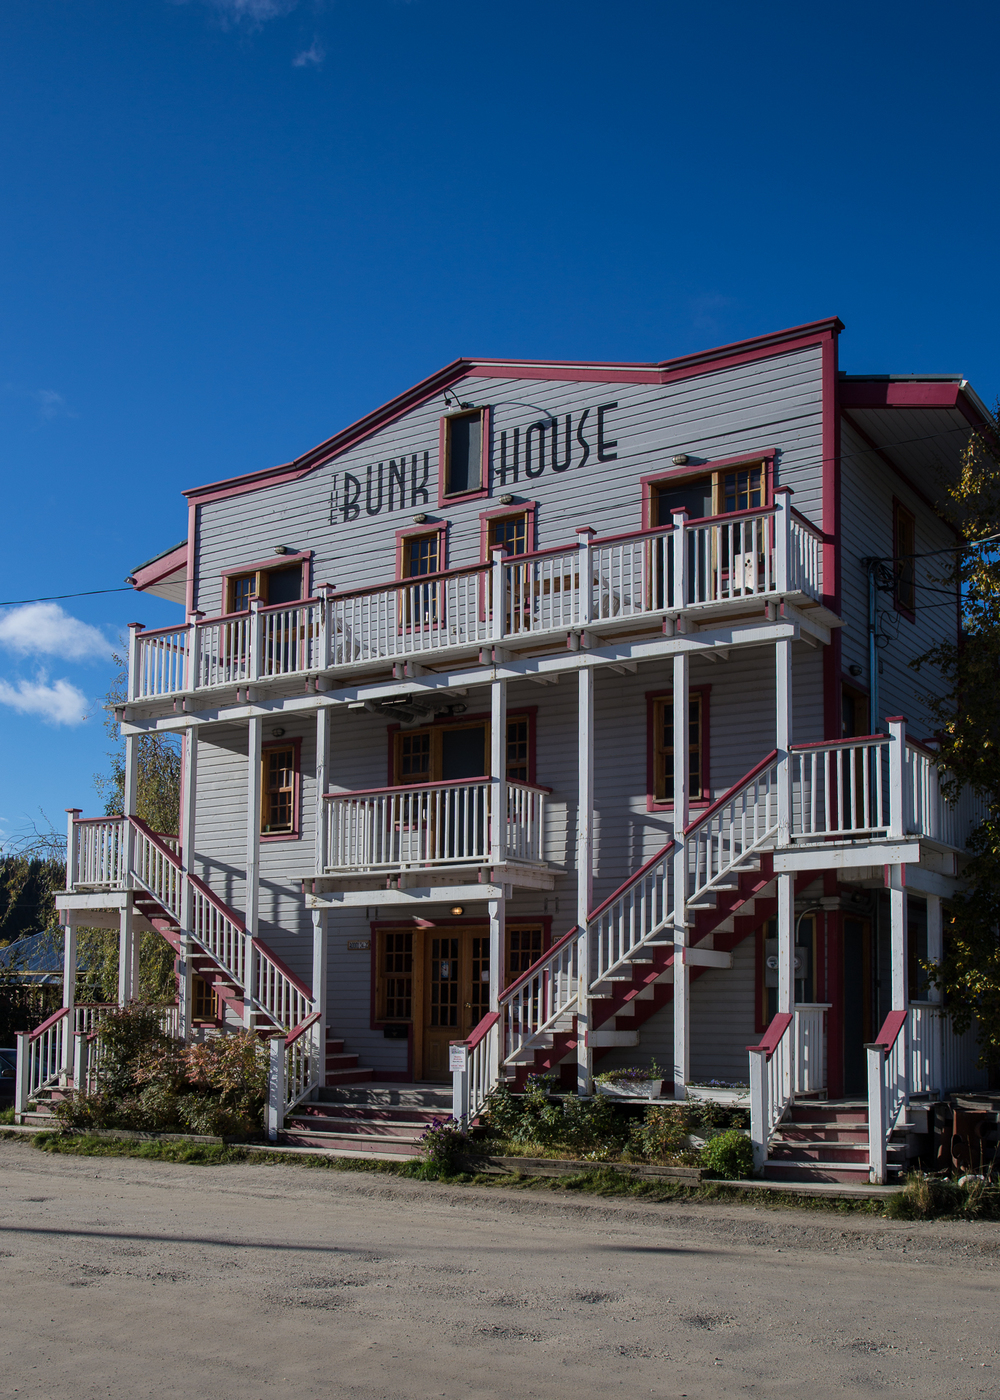 The Bunk House - one of the hotels in town.